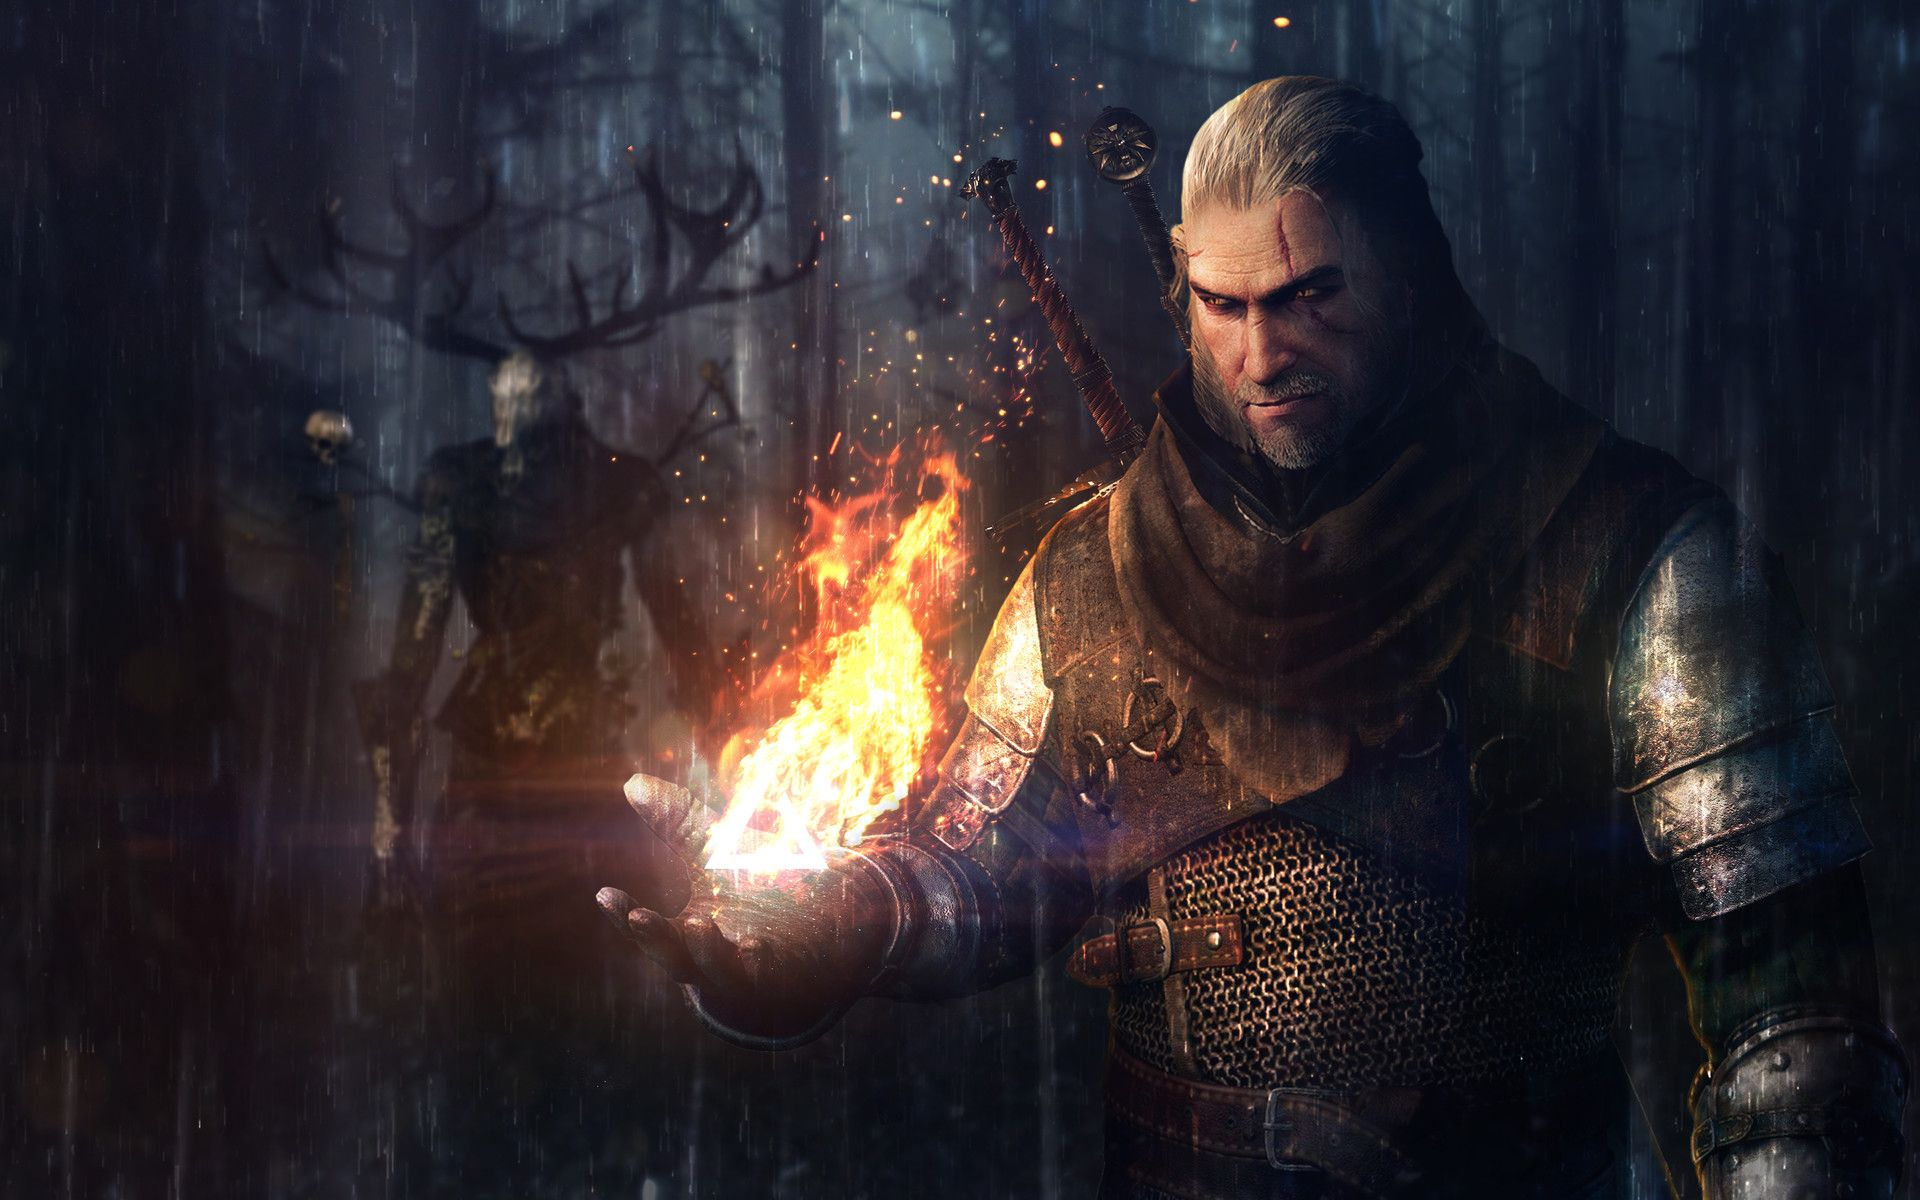 Video Game The Witcher 3 Wild Hunt The Witcher Geralt Of Rivia Hd Wallpaper Background Images 2 Wallpaper Cart The Witcher Geralt The Witcher Witcher Art